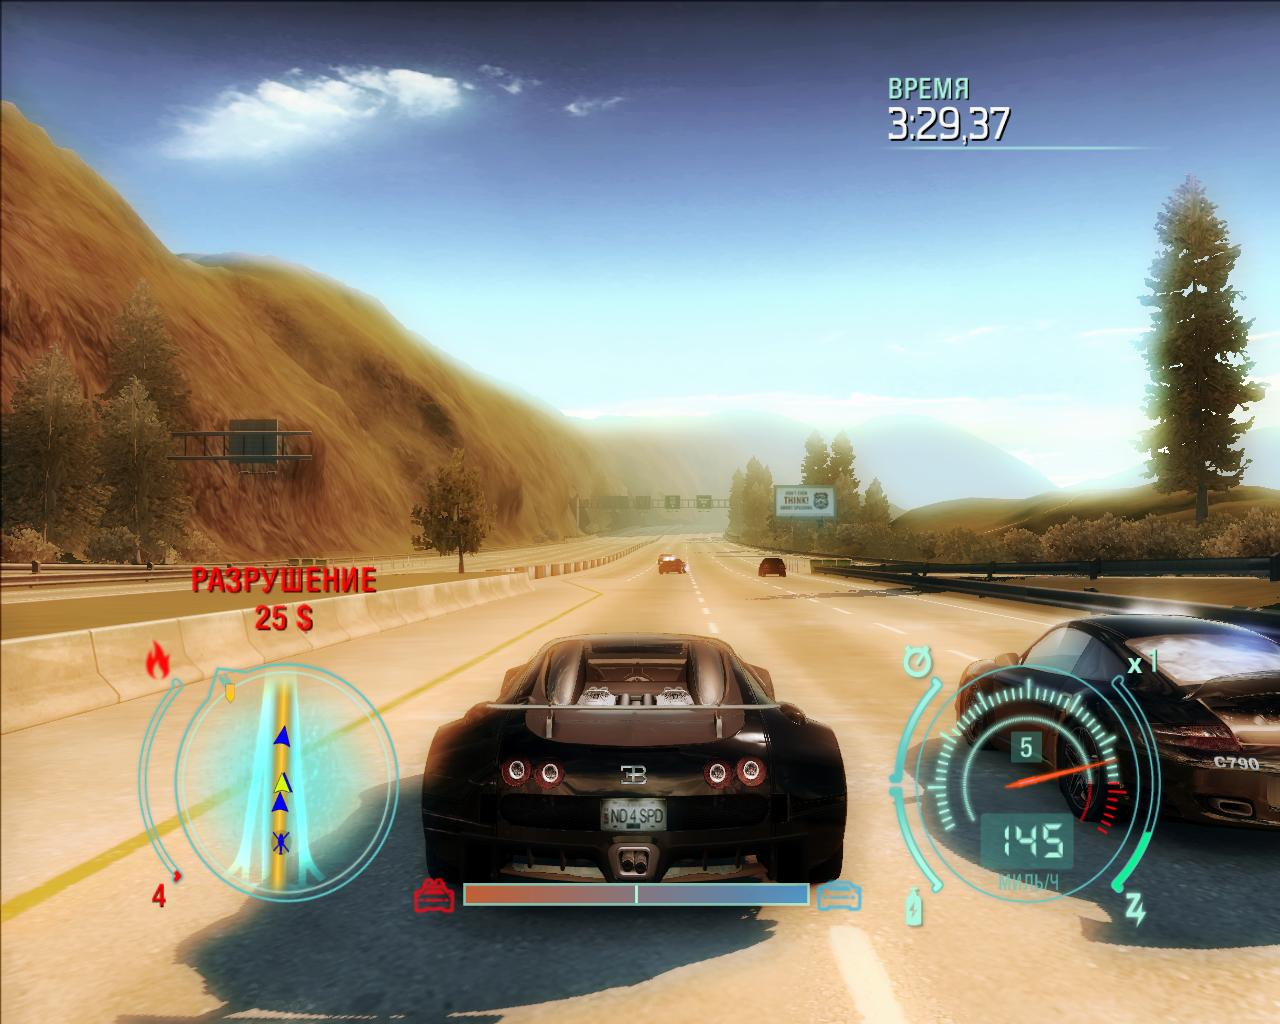 Need For Speed Underground 2 downloadable cars NFSU2 Profile creator Downloads 16 million saved game 100 Downloads 11 million